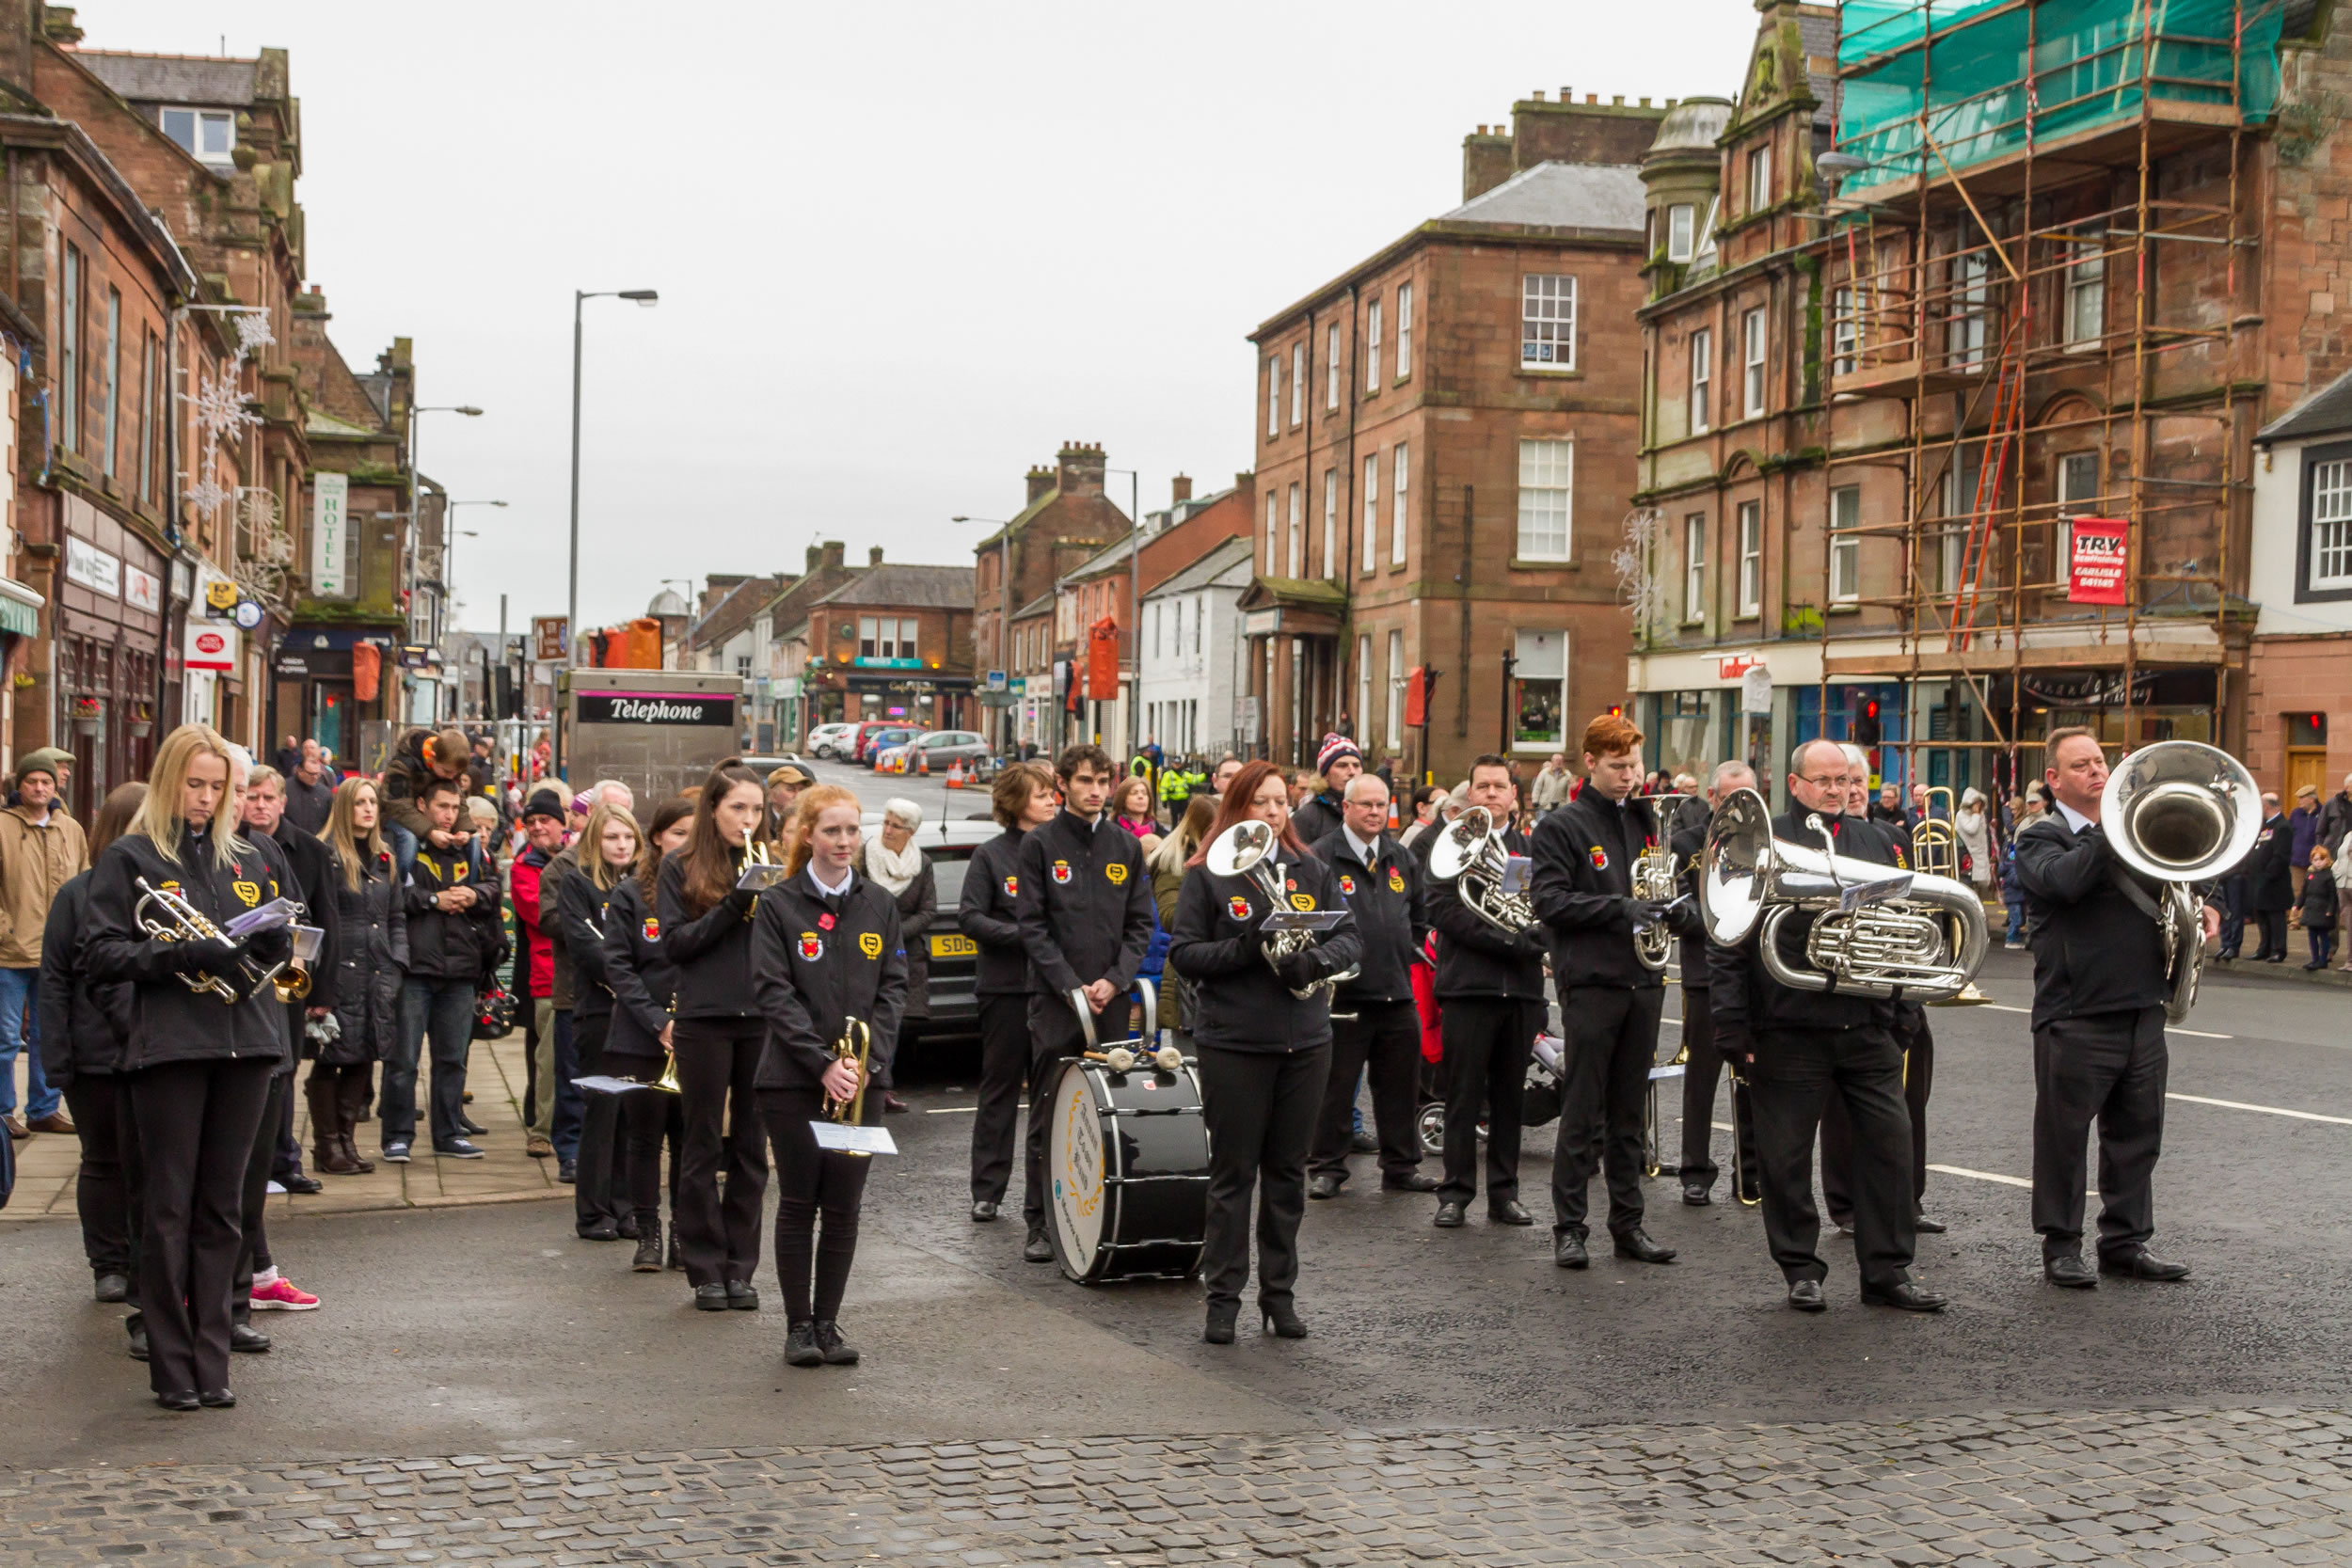 Annan Town Band at the Remembrance Day Parade in Annan on Sunday 13th of November 2016